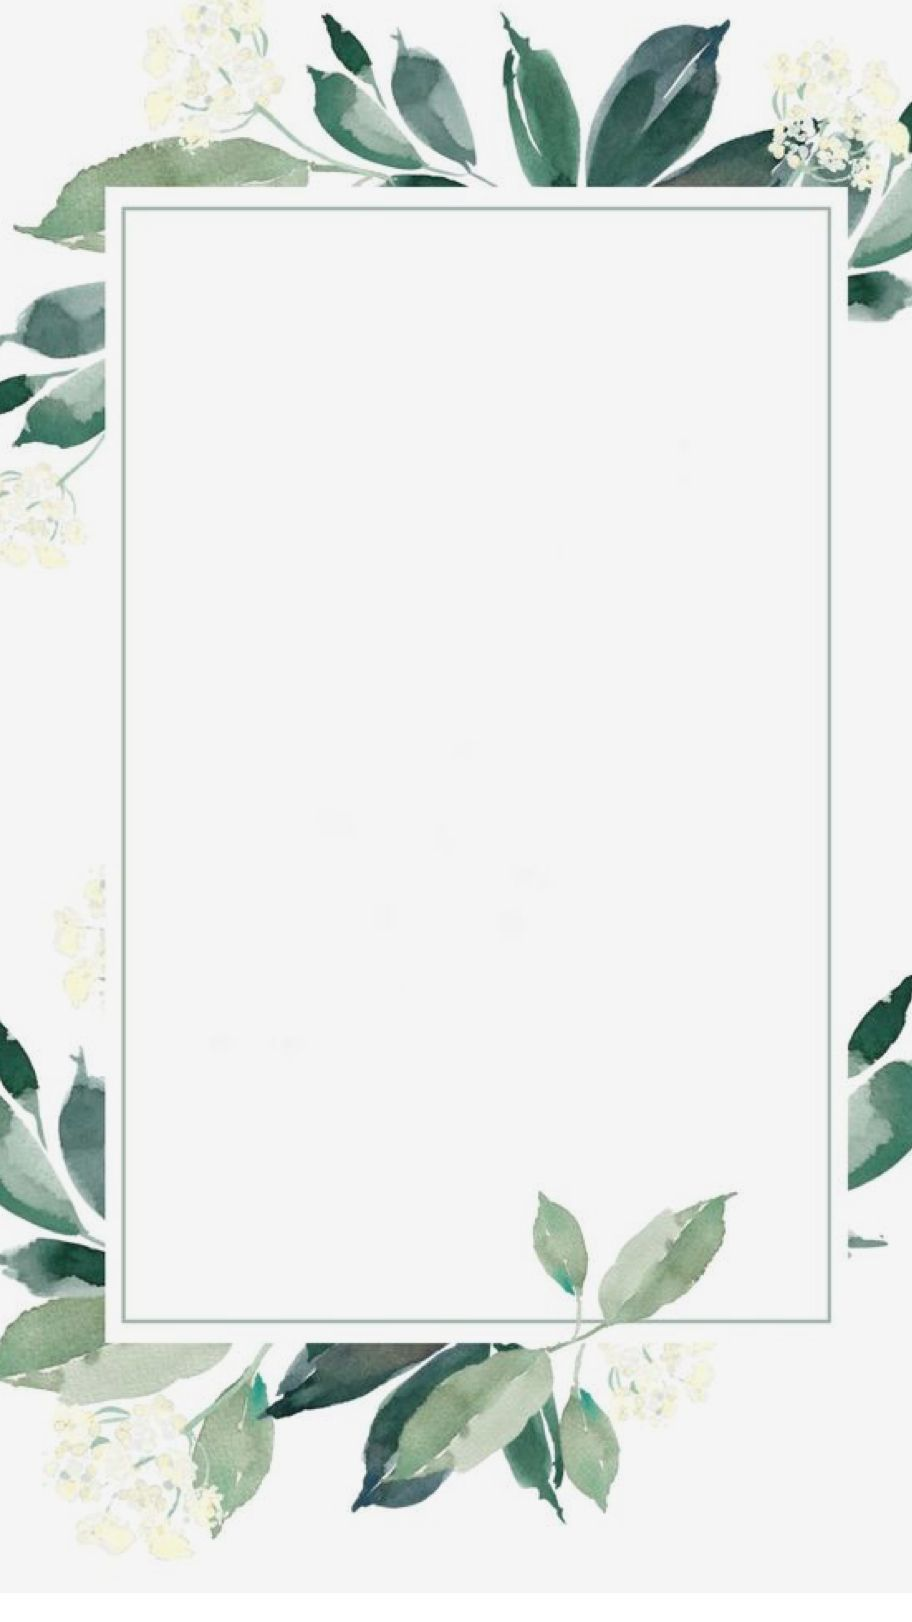 Flower Backgrounds, Flower Wallpaper, Screen Wallpaper, Wallpaper Backgrounds, Instagram Background, Wreath Drawing, Printable Frames, Background Templates, Background Patterns #flowersbackgroundiphone